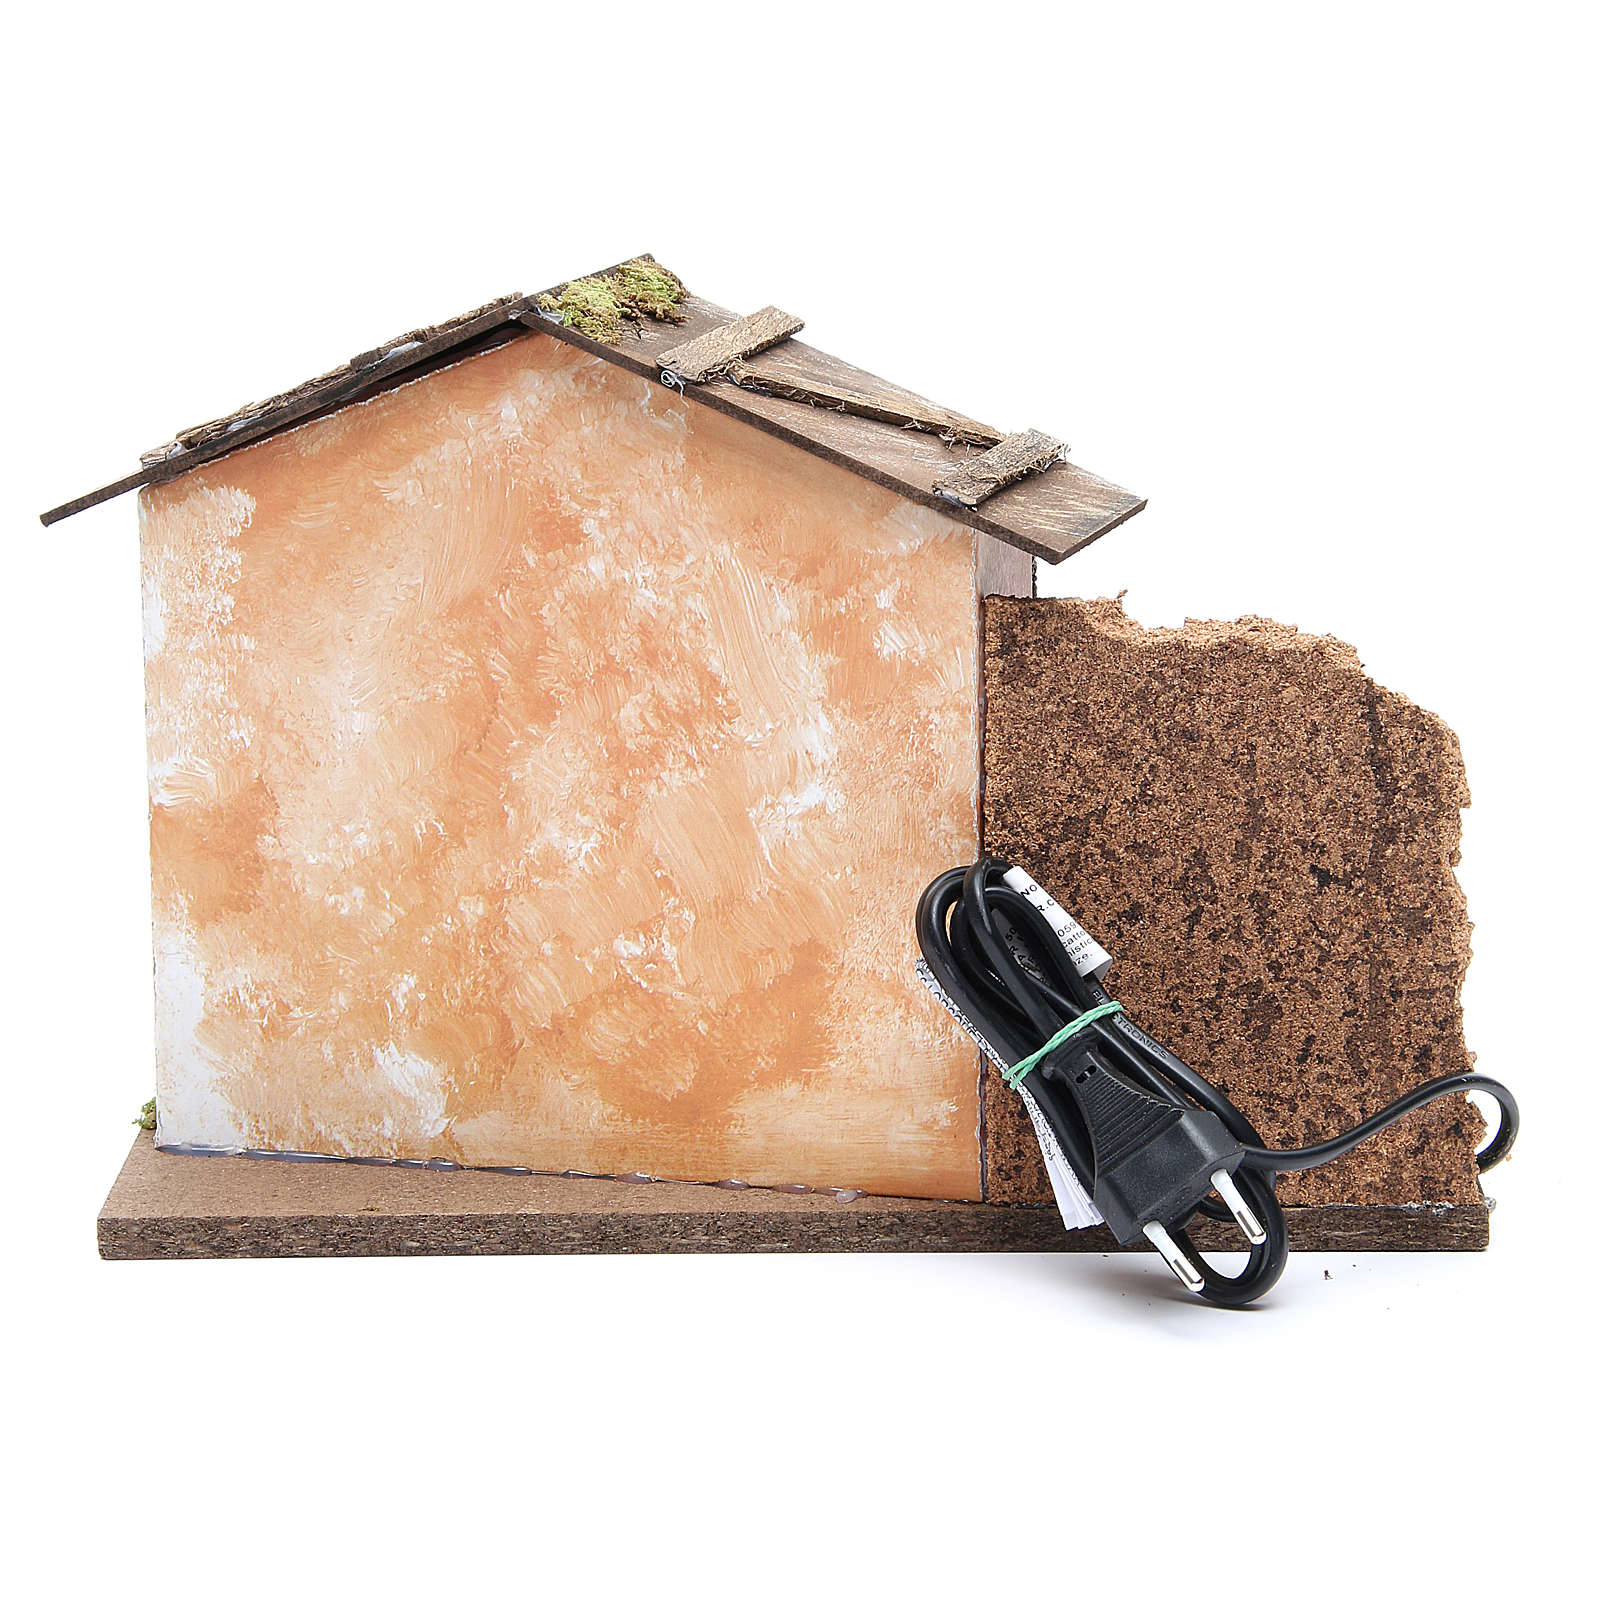 Nativity farmhouse with flame effect oven 23x33x18cm 4